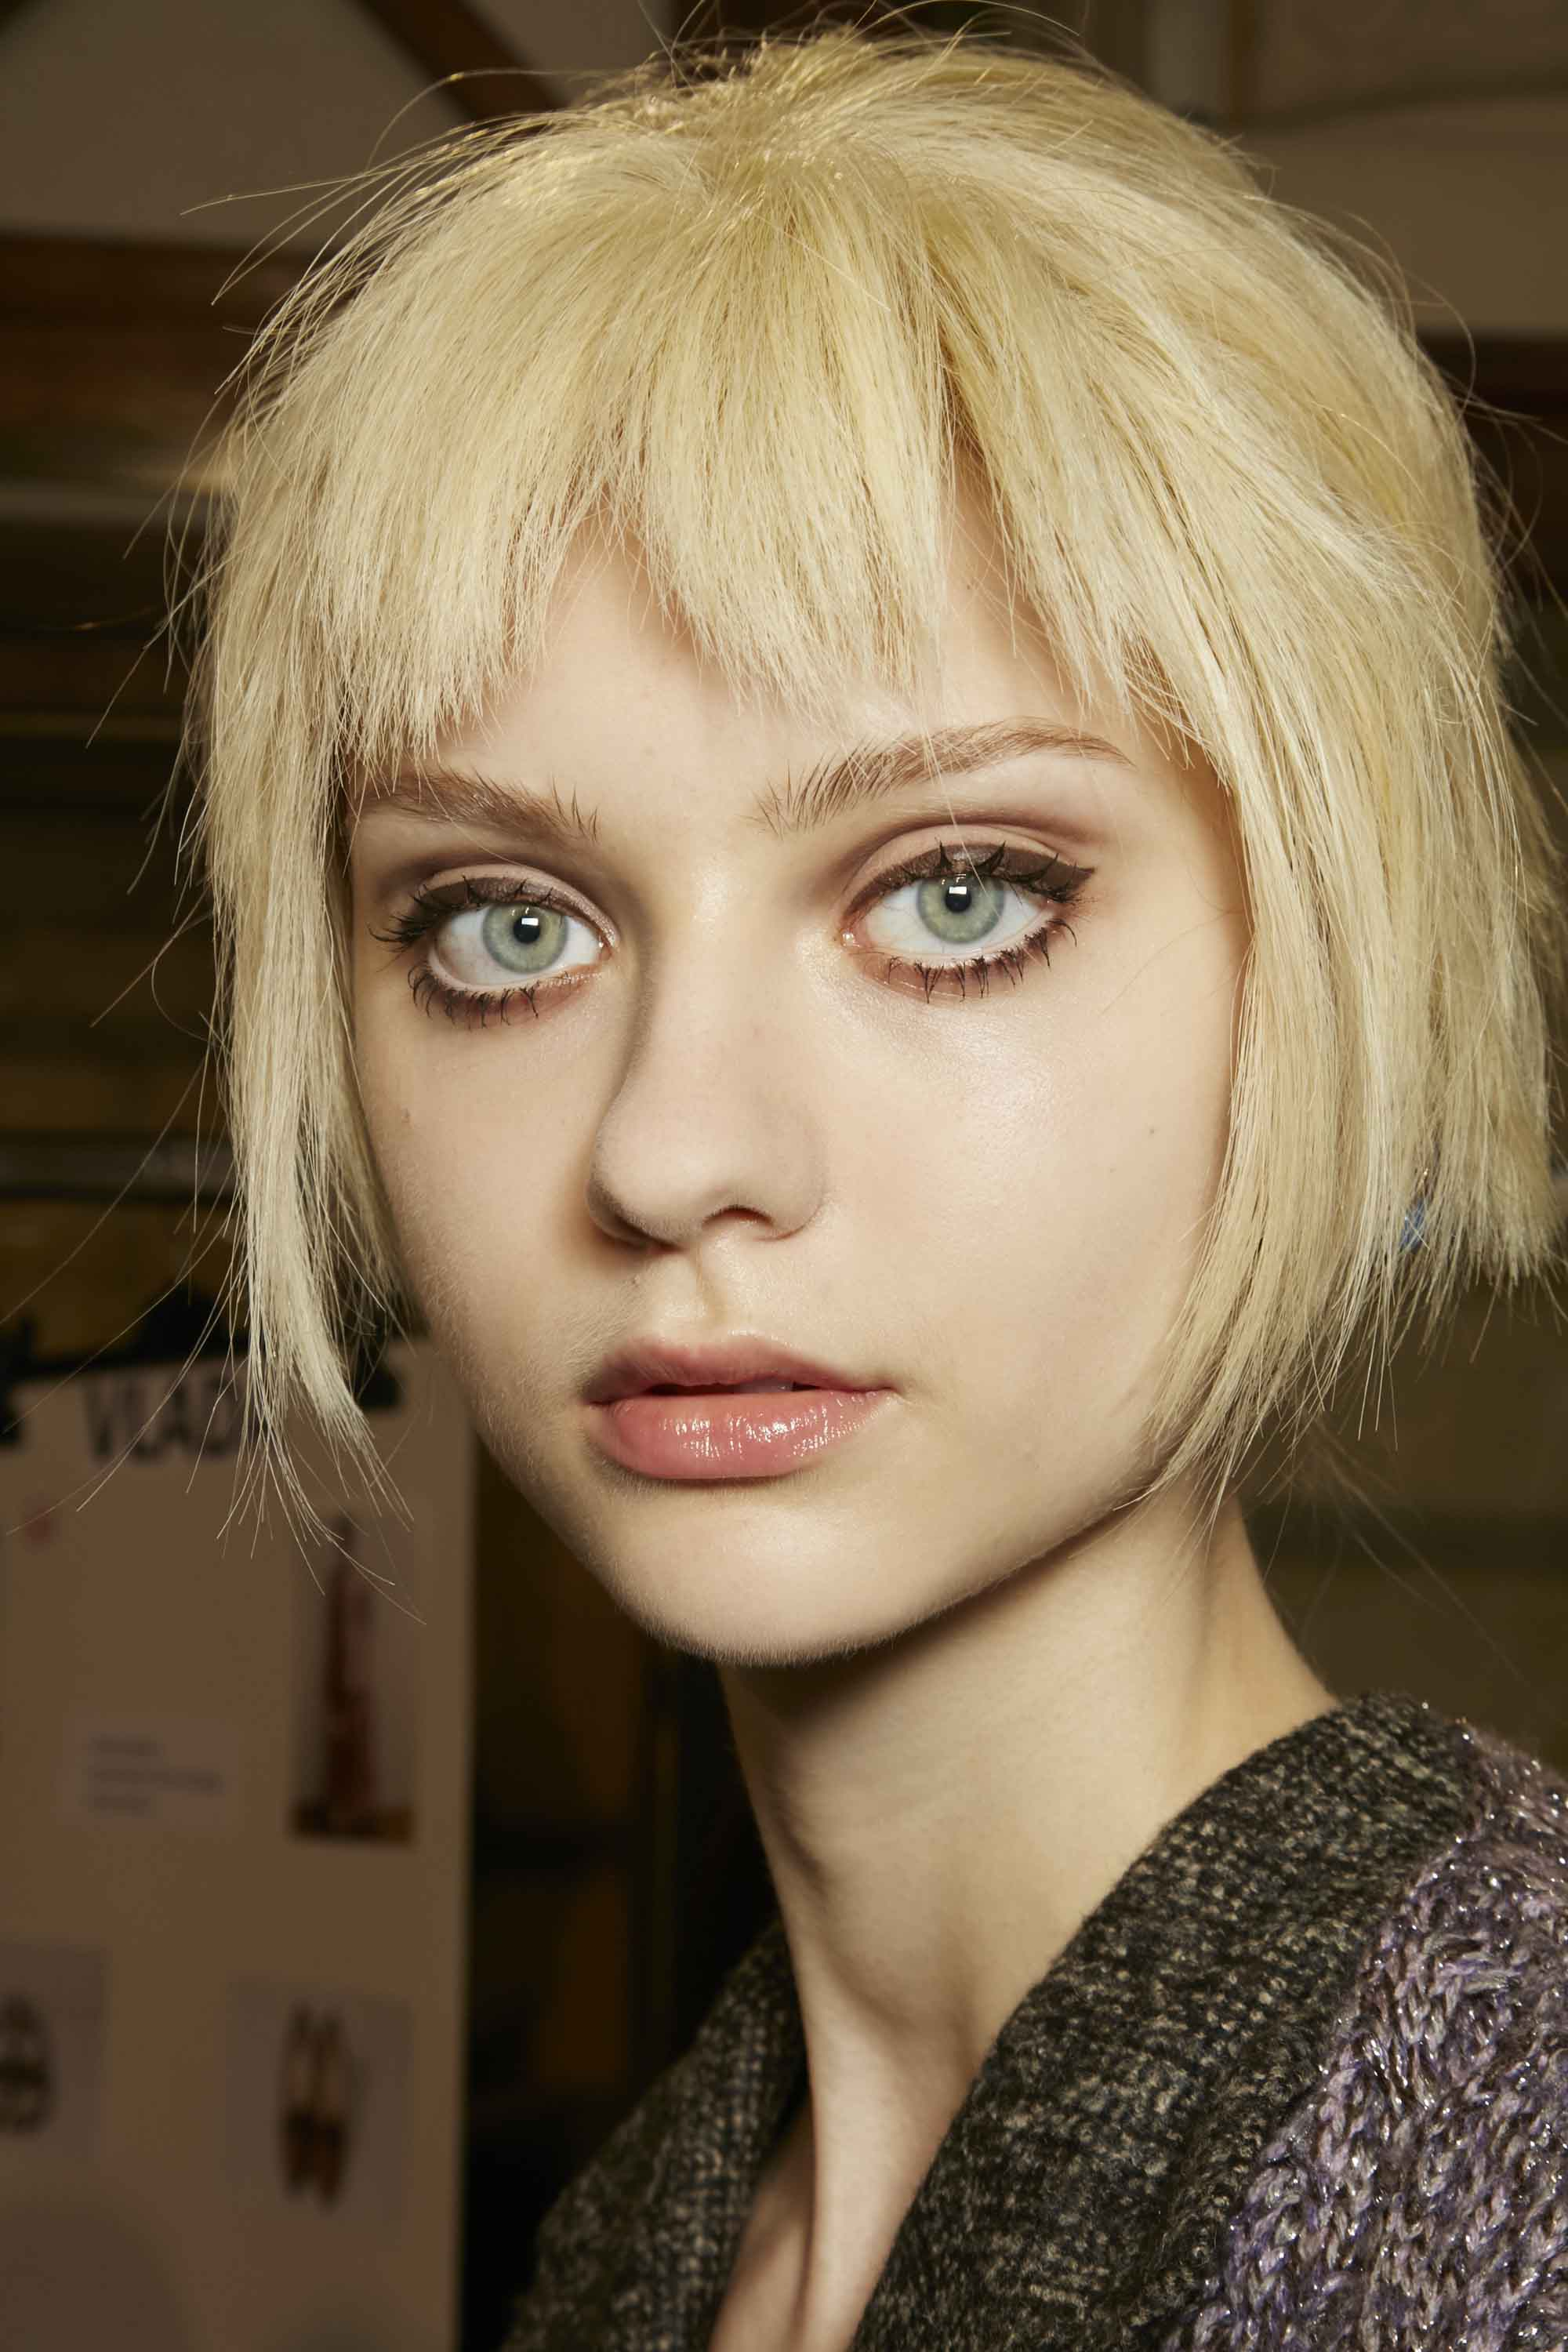 Balayage Brown To Blonde With Fringe The Ultimate Guide To Rocking A Short Fringe Find Your